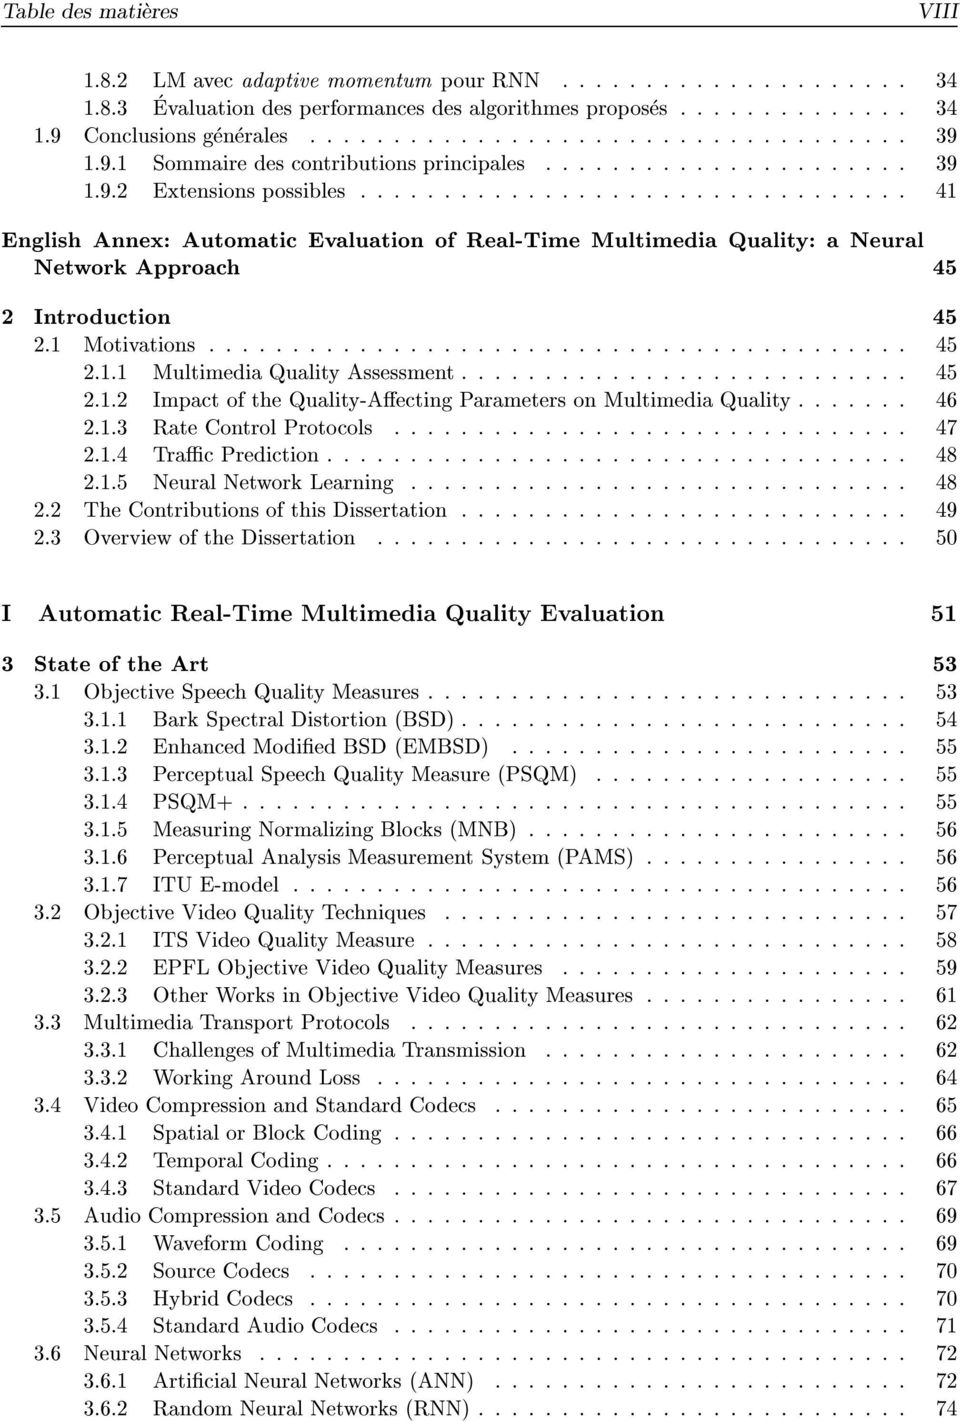 ................................ 41 English Annex: Automatic Evaluation of Real-Time Multimedia Quality: a Neural Network Approach 45 2 Introduction 45 2.1 Motivations.......................................... 45 2.1.1 Multimedia Quality Assessment.